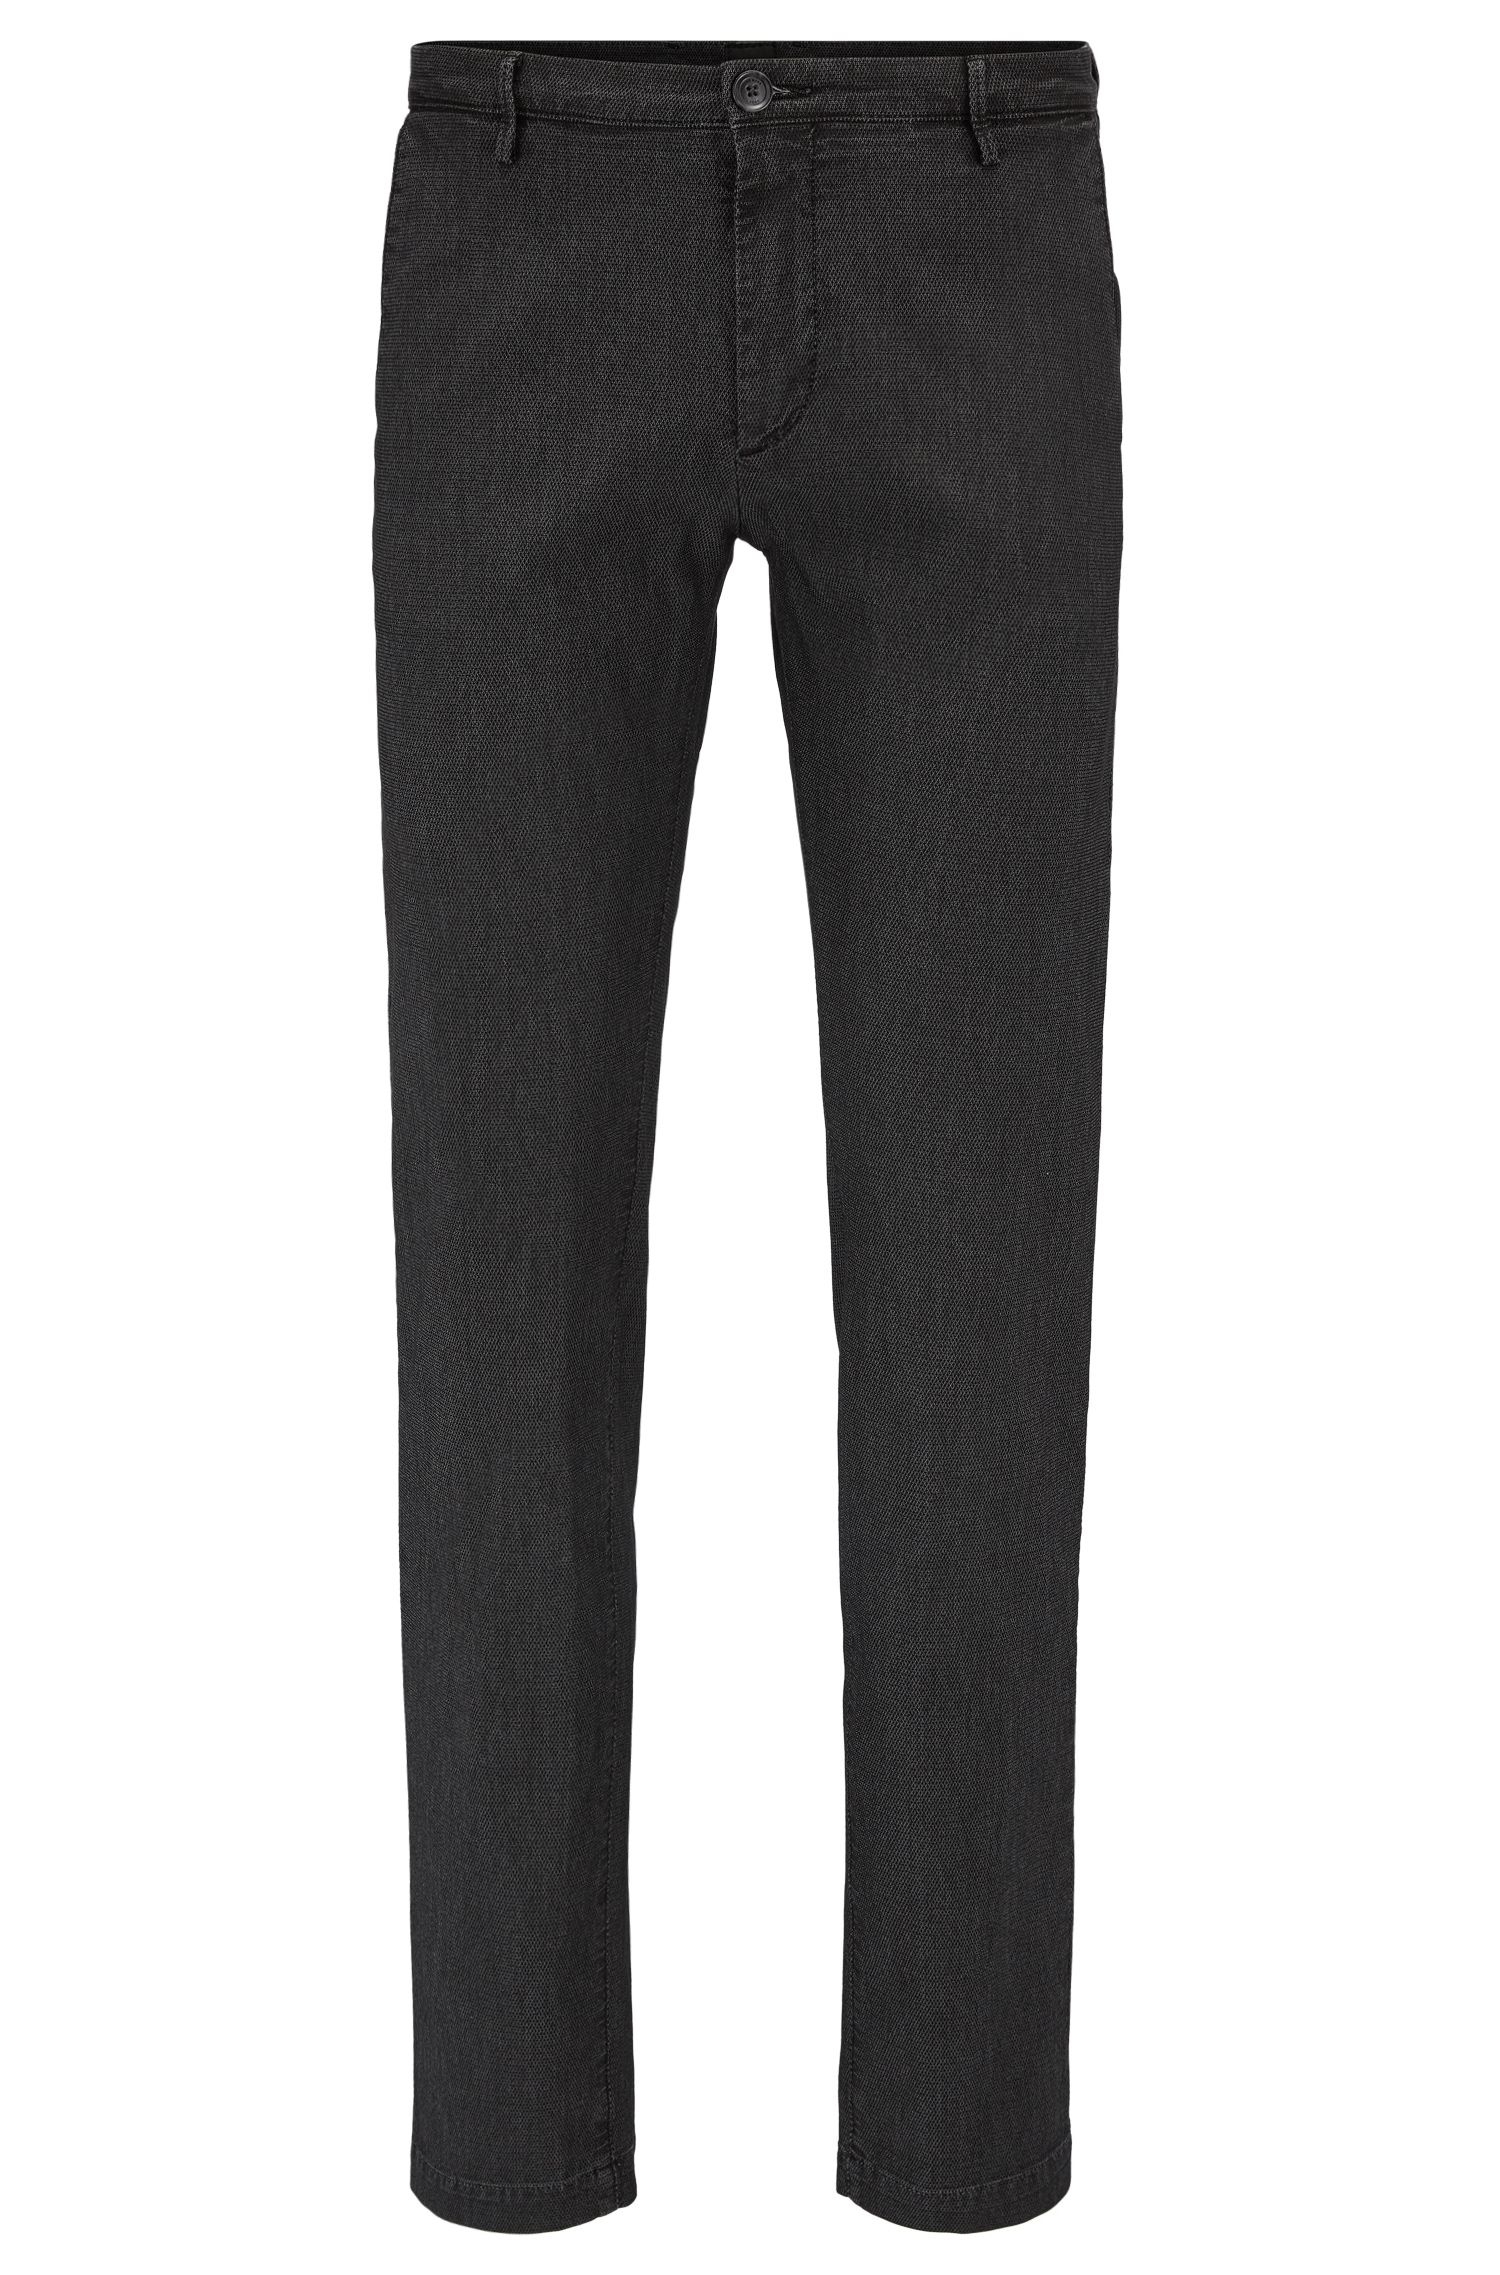 Slim-fit chinos in a textured stretch-cotton blend